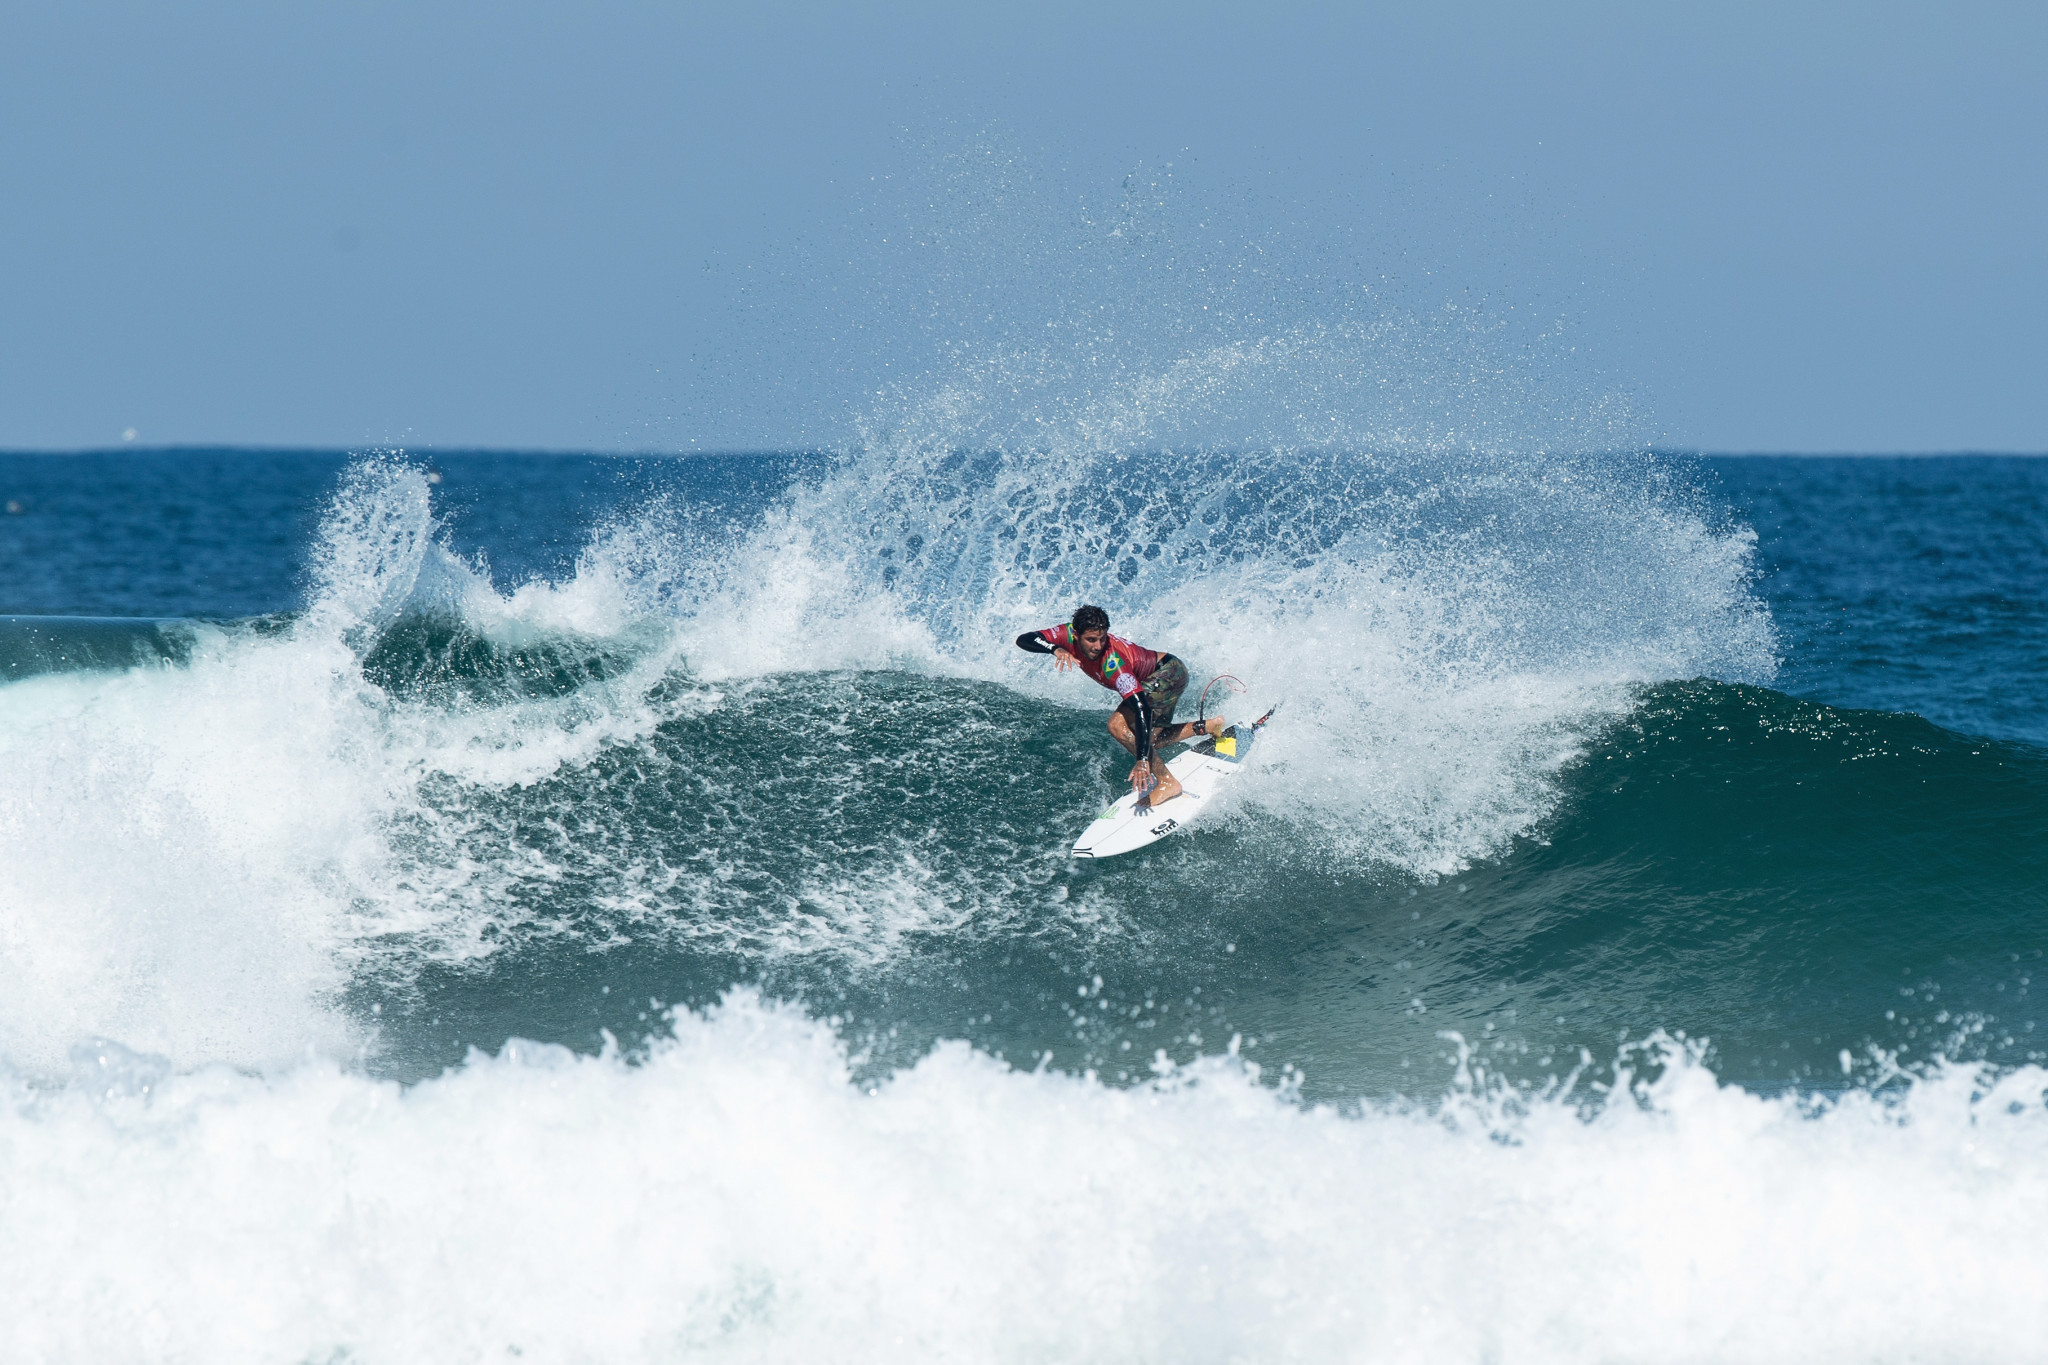 Toledo knocked out on second day of World Surf League Corona Open Mexico